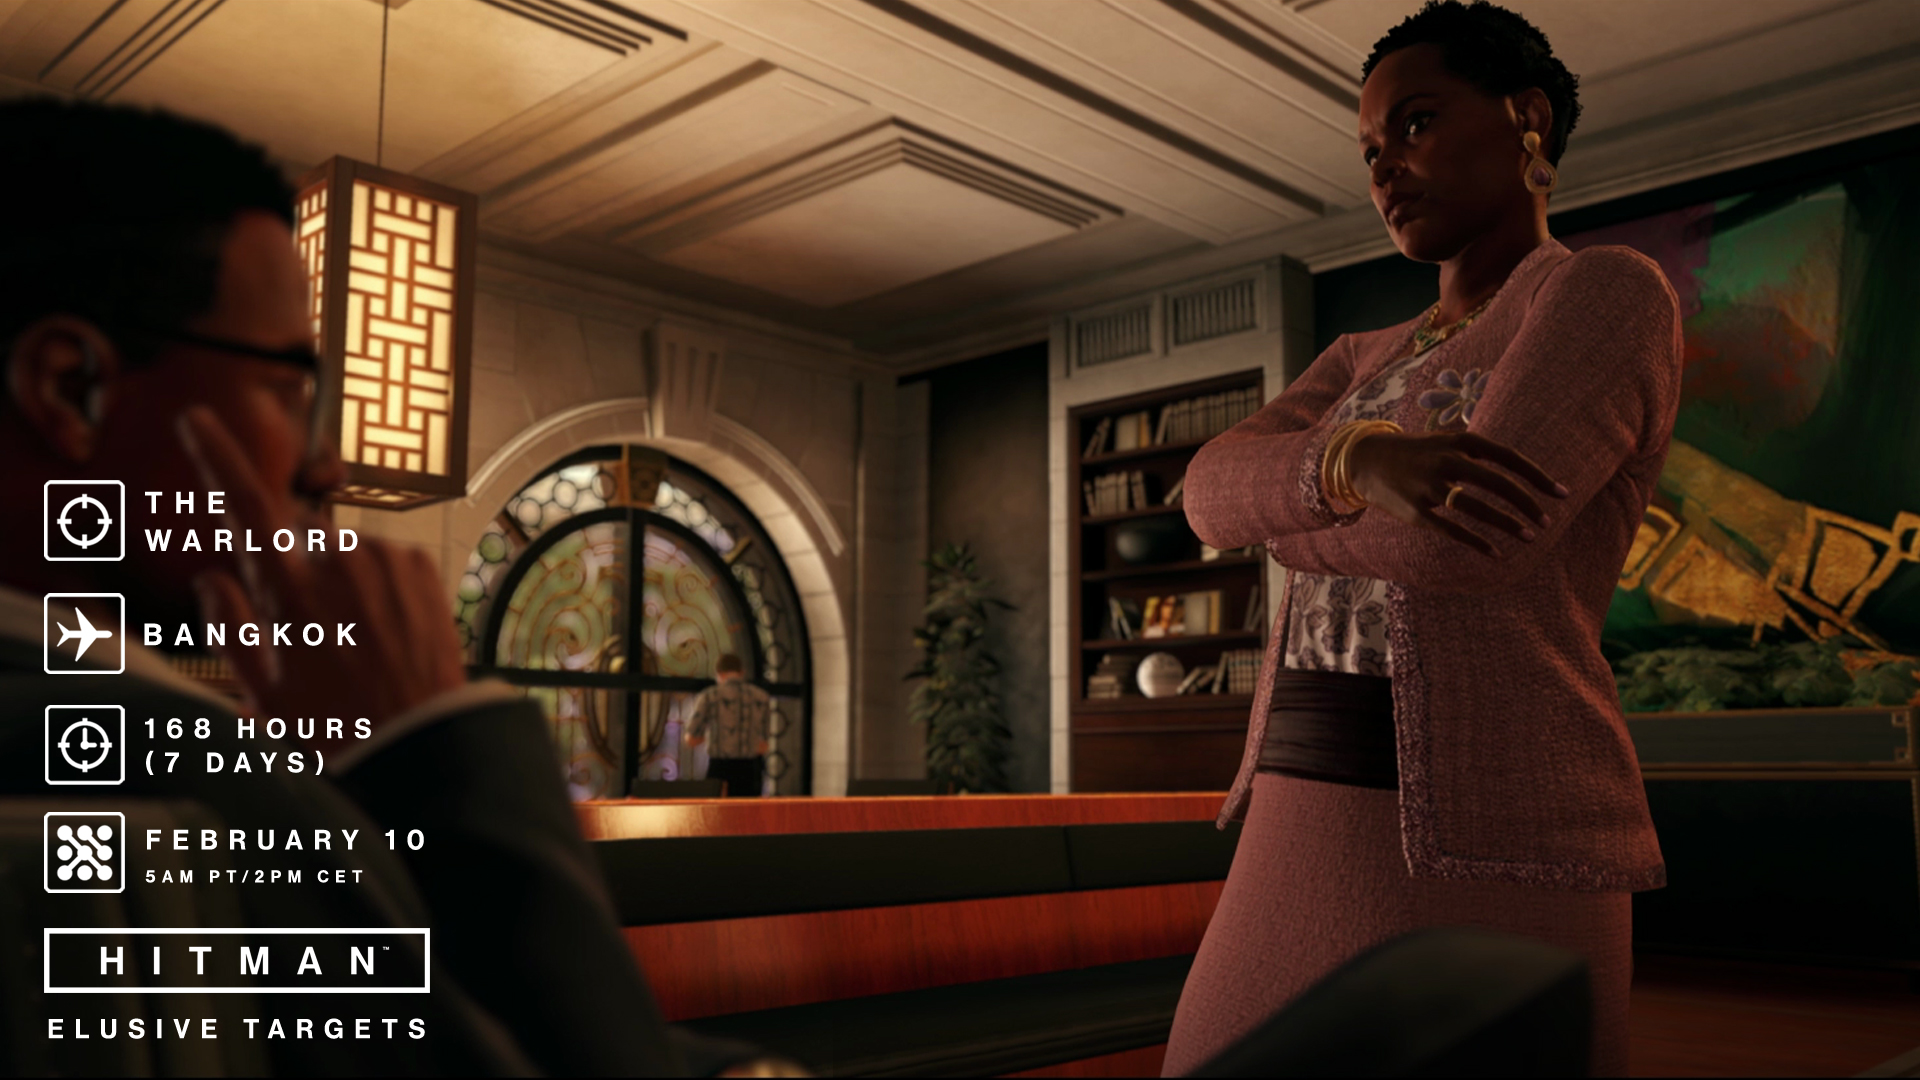 The Warlord Arrives In Bangkok As The 20th Elusive Target For